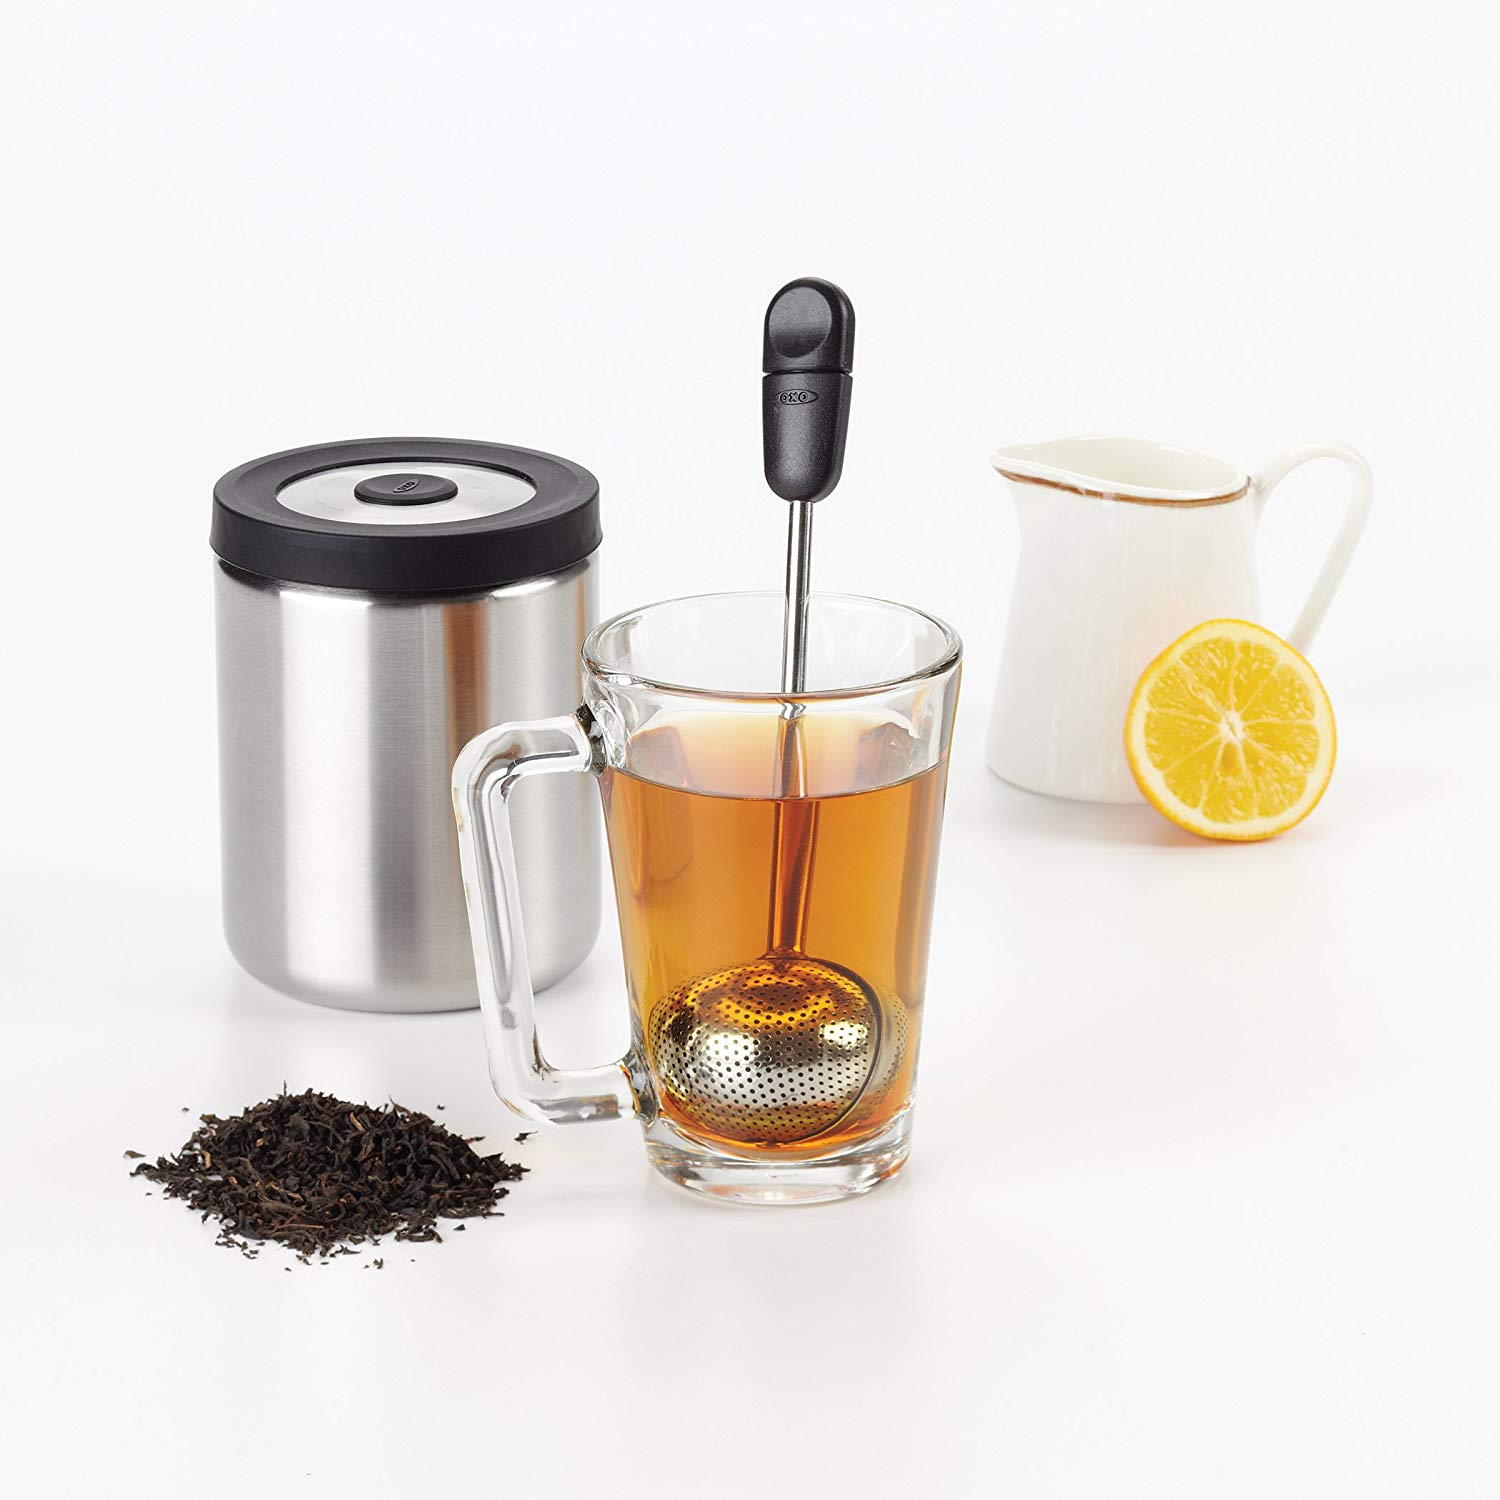 The oxo good grips twisting tea ball